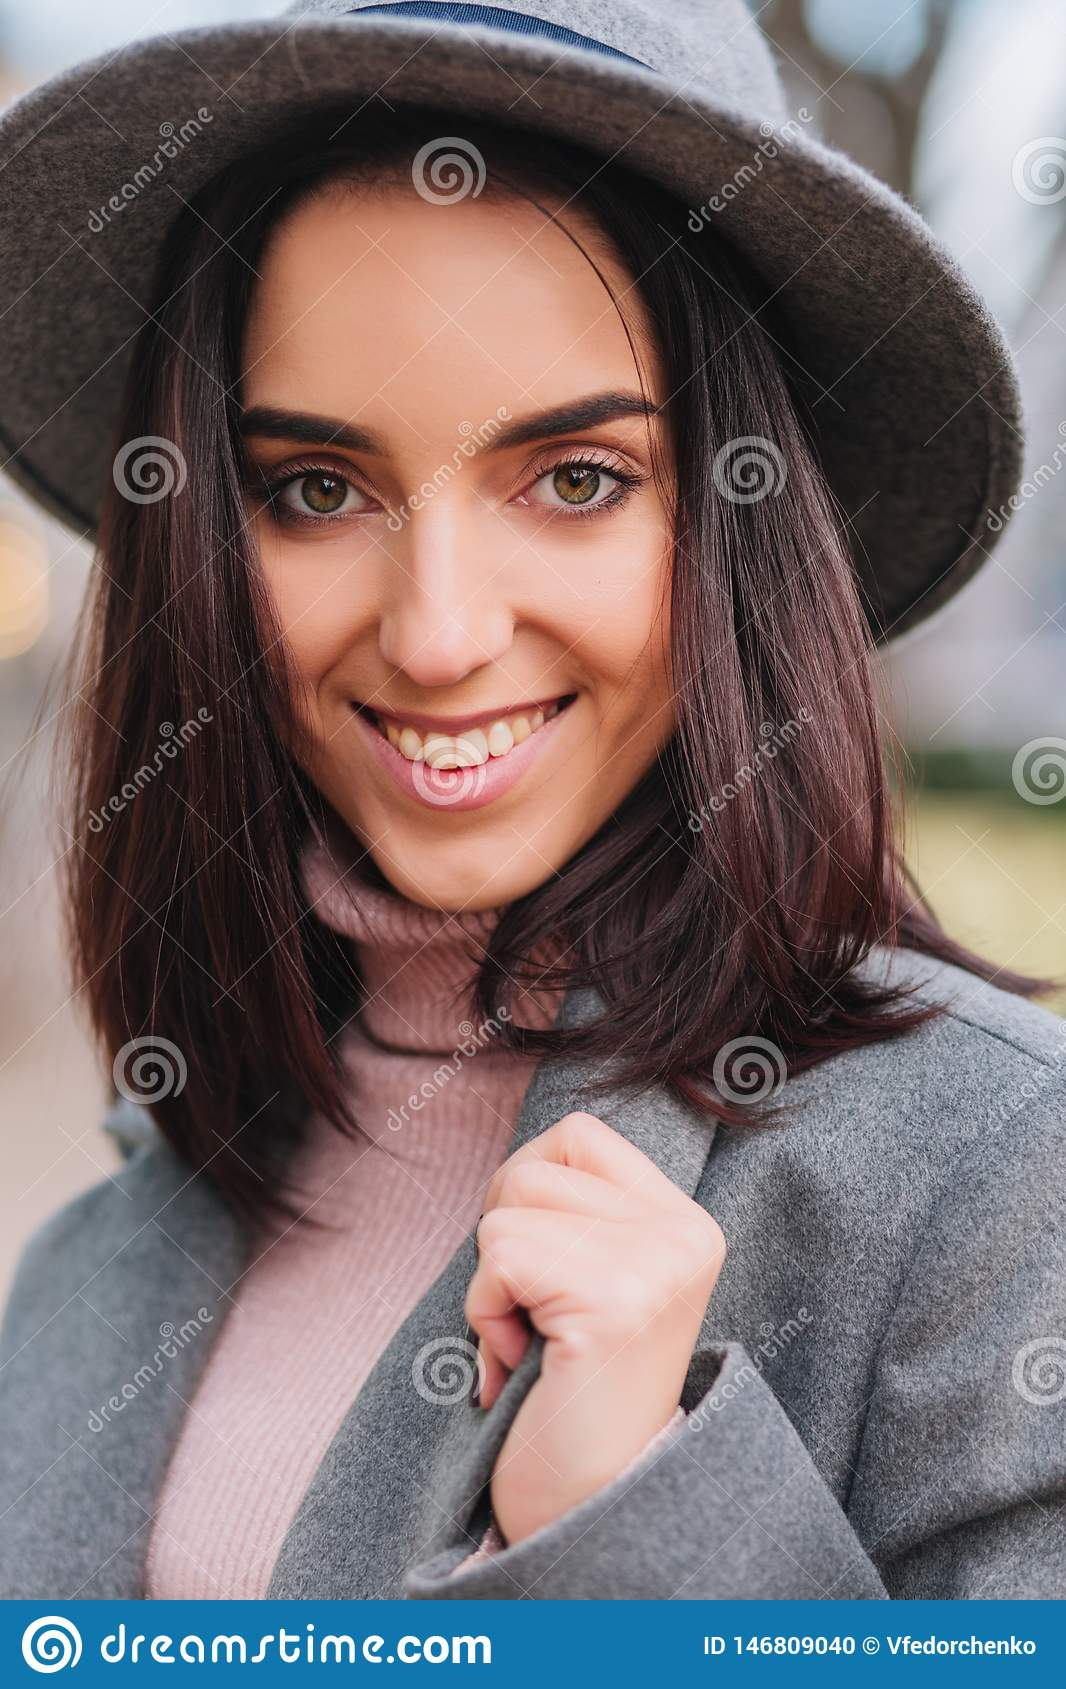 Closeup portrait fashionable charming young woman with brunette hair, in grey hat smiling to camera on street in city